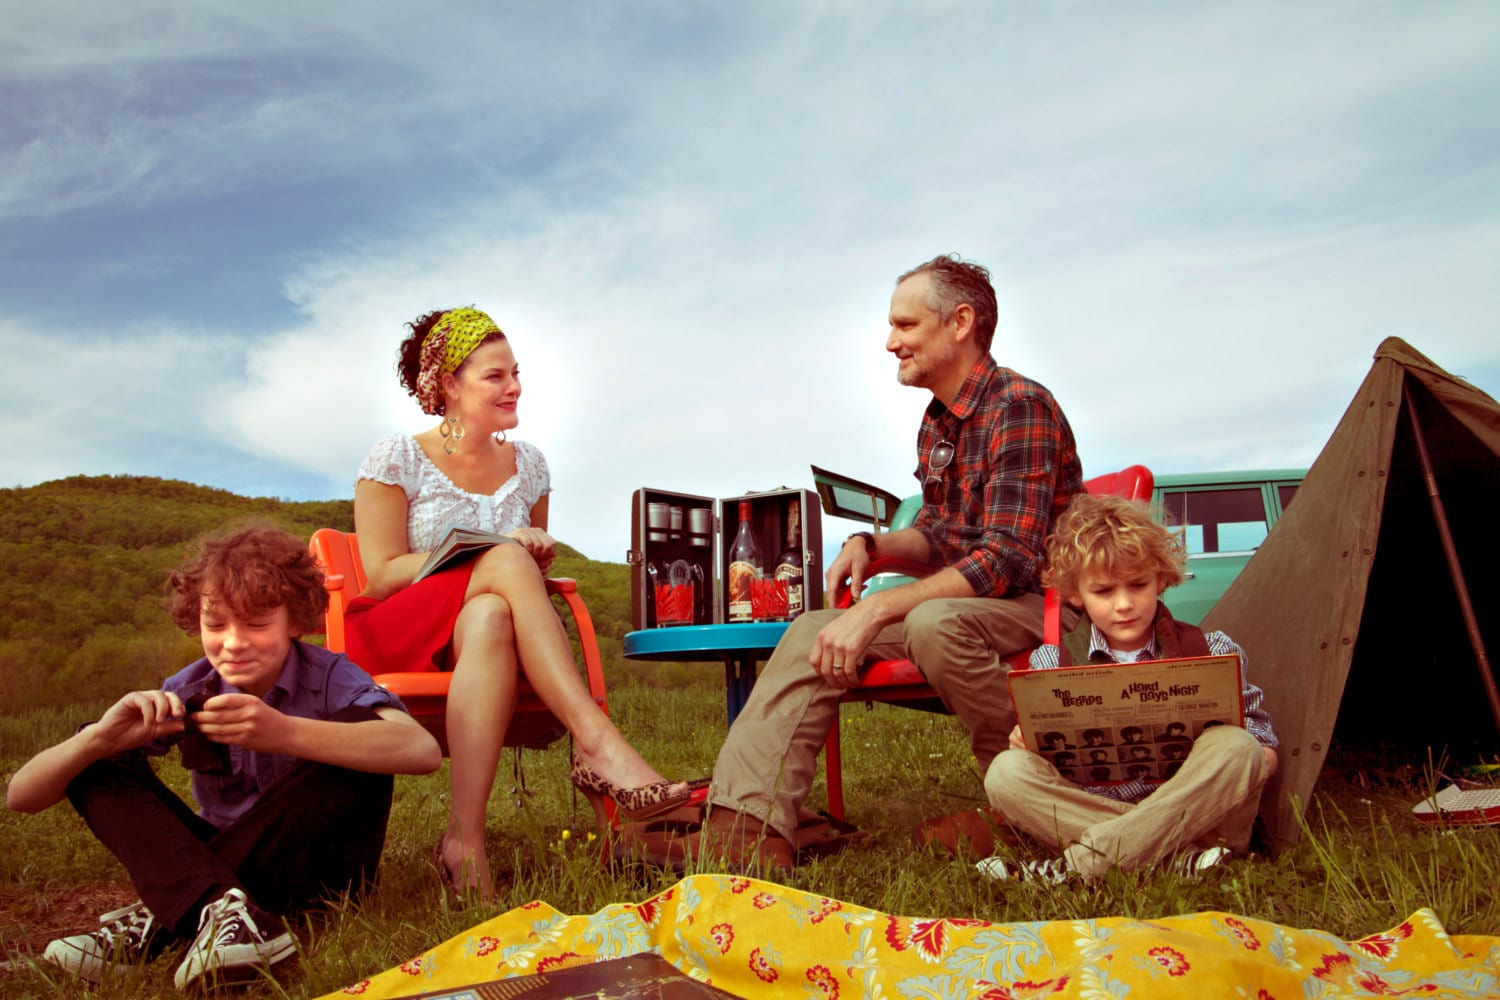 Fine Art Photography Vintage Family Camping Retro Image